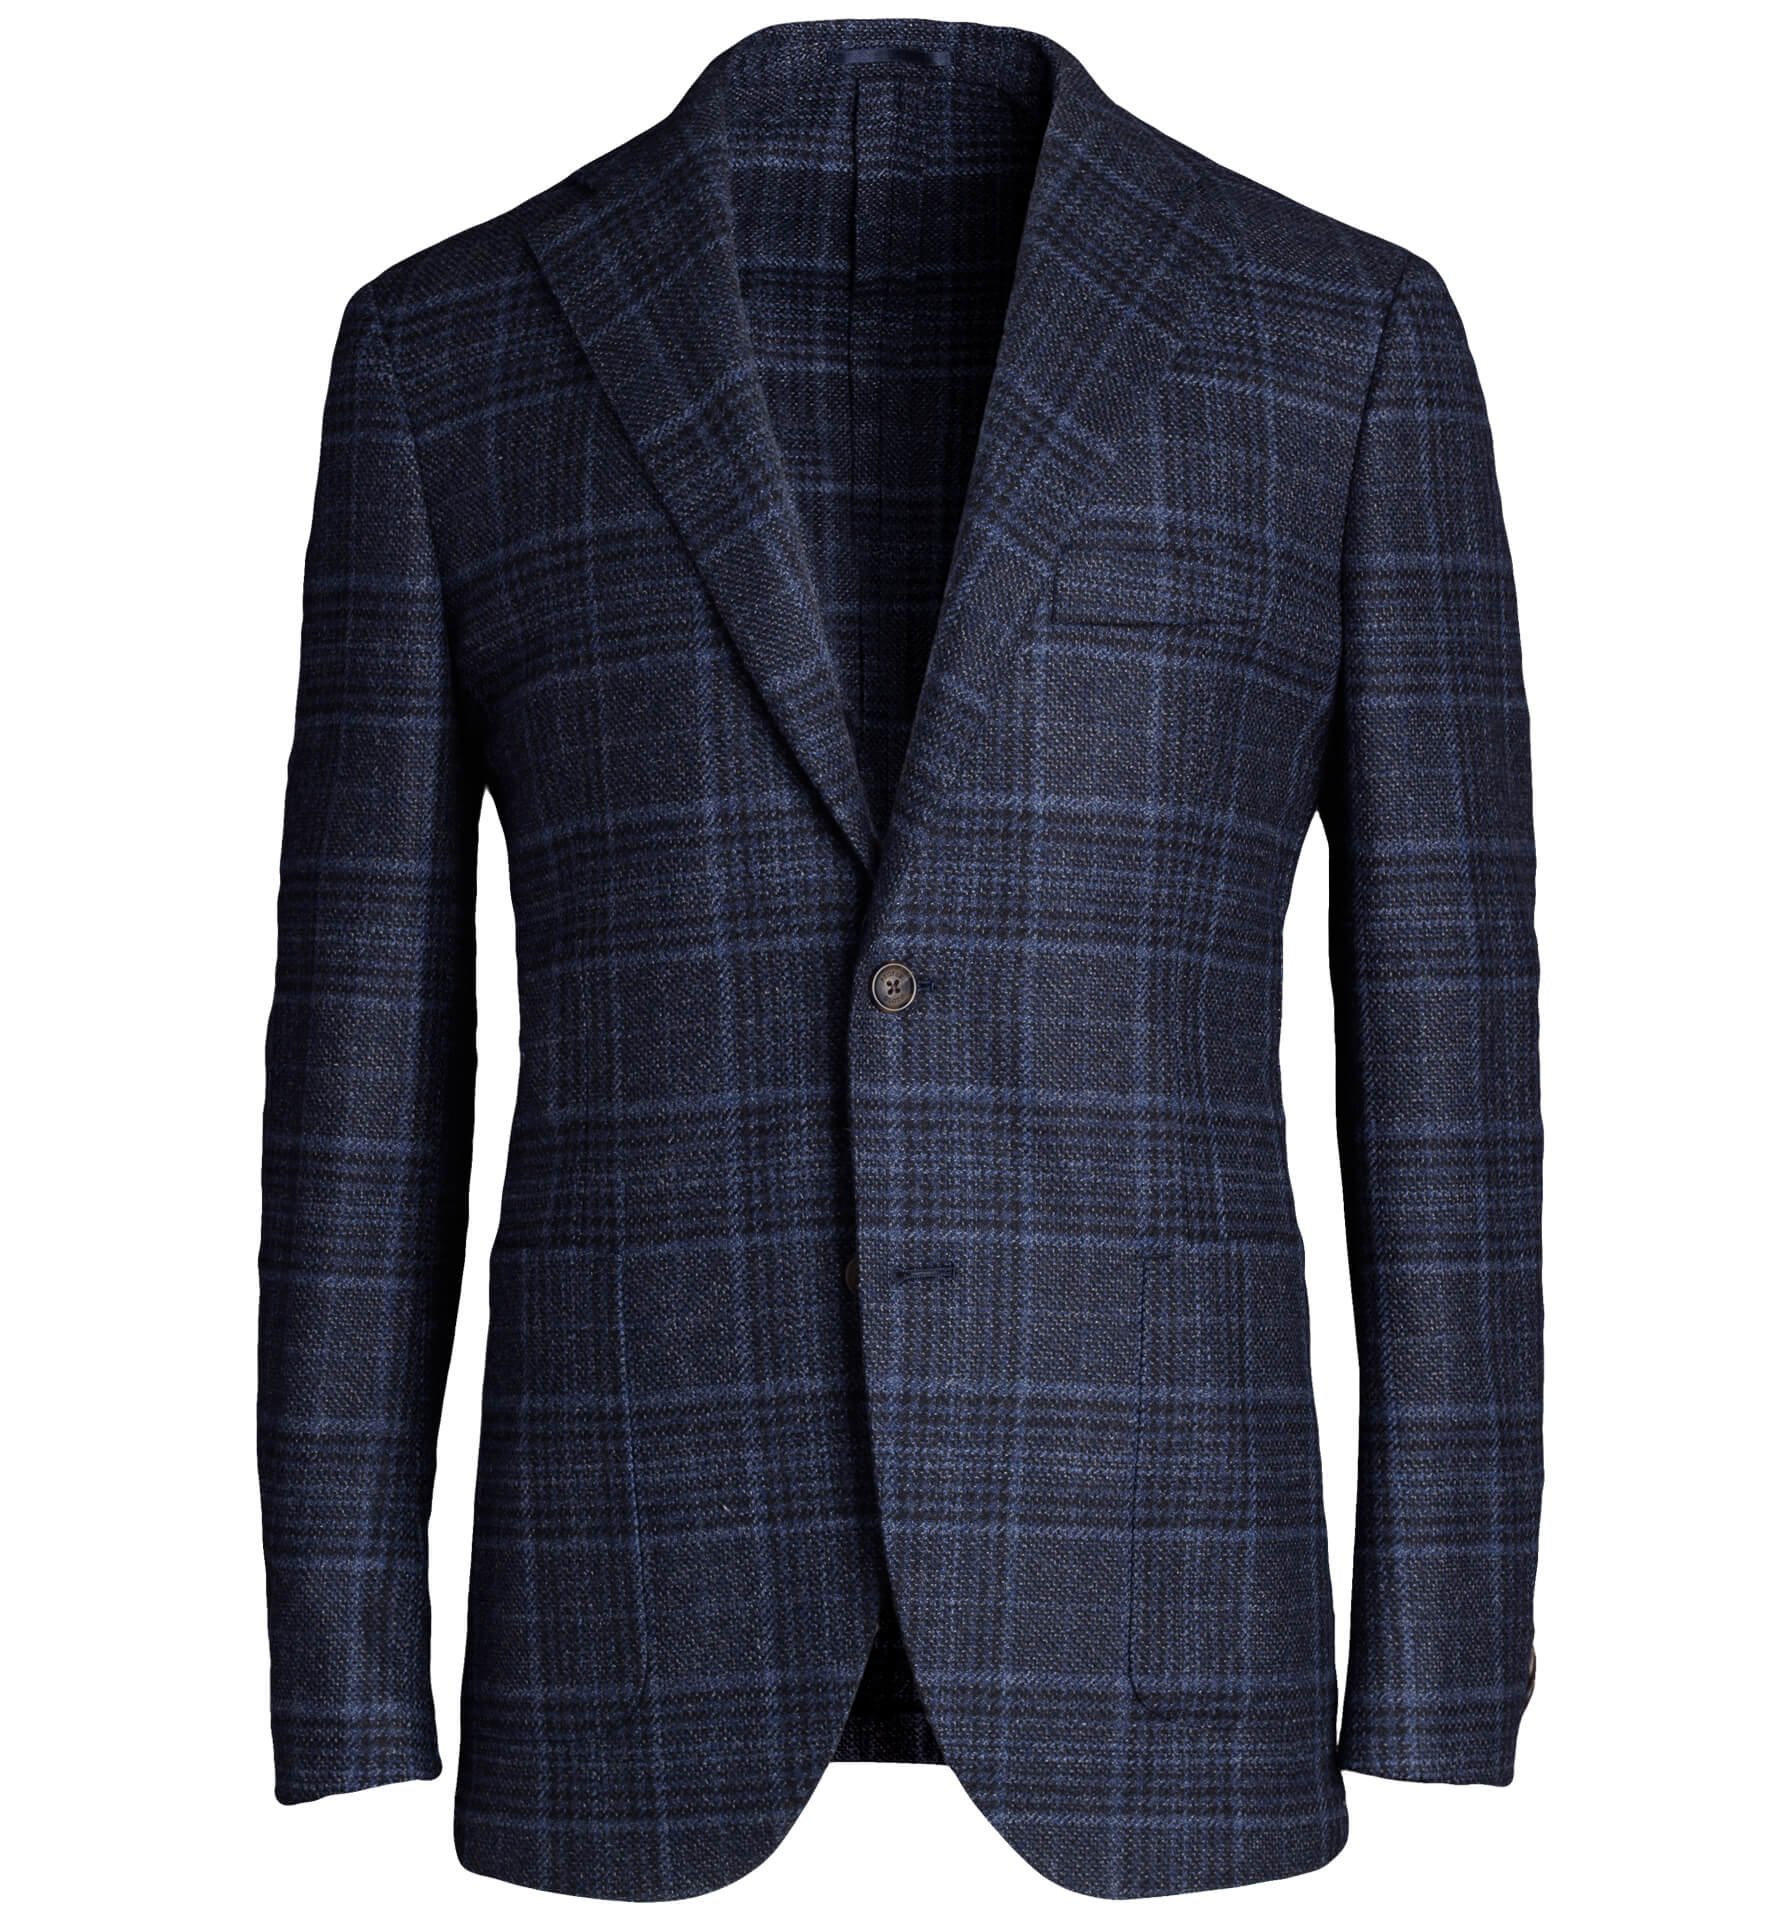 Zoom Image of Bedford Blue Plaid Wool and Cashmere Jacket